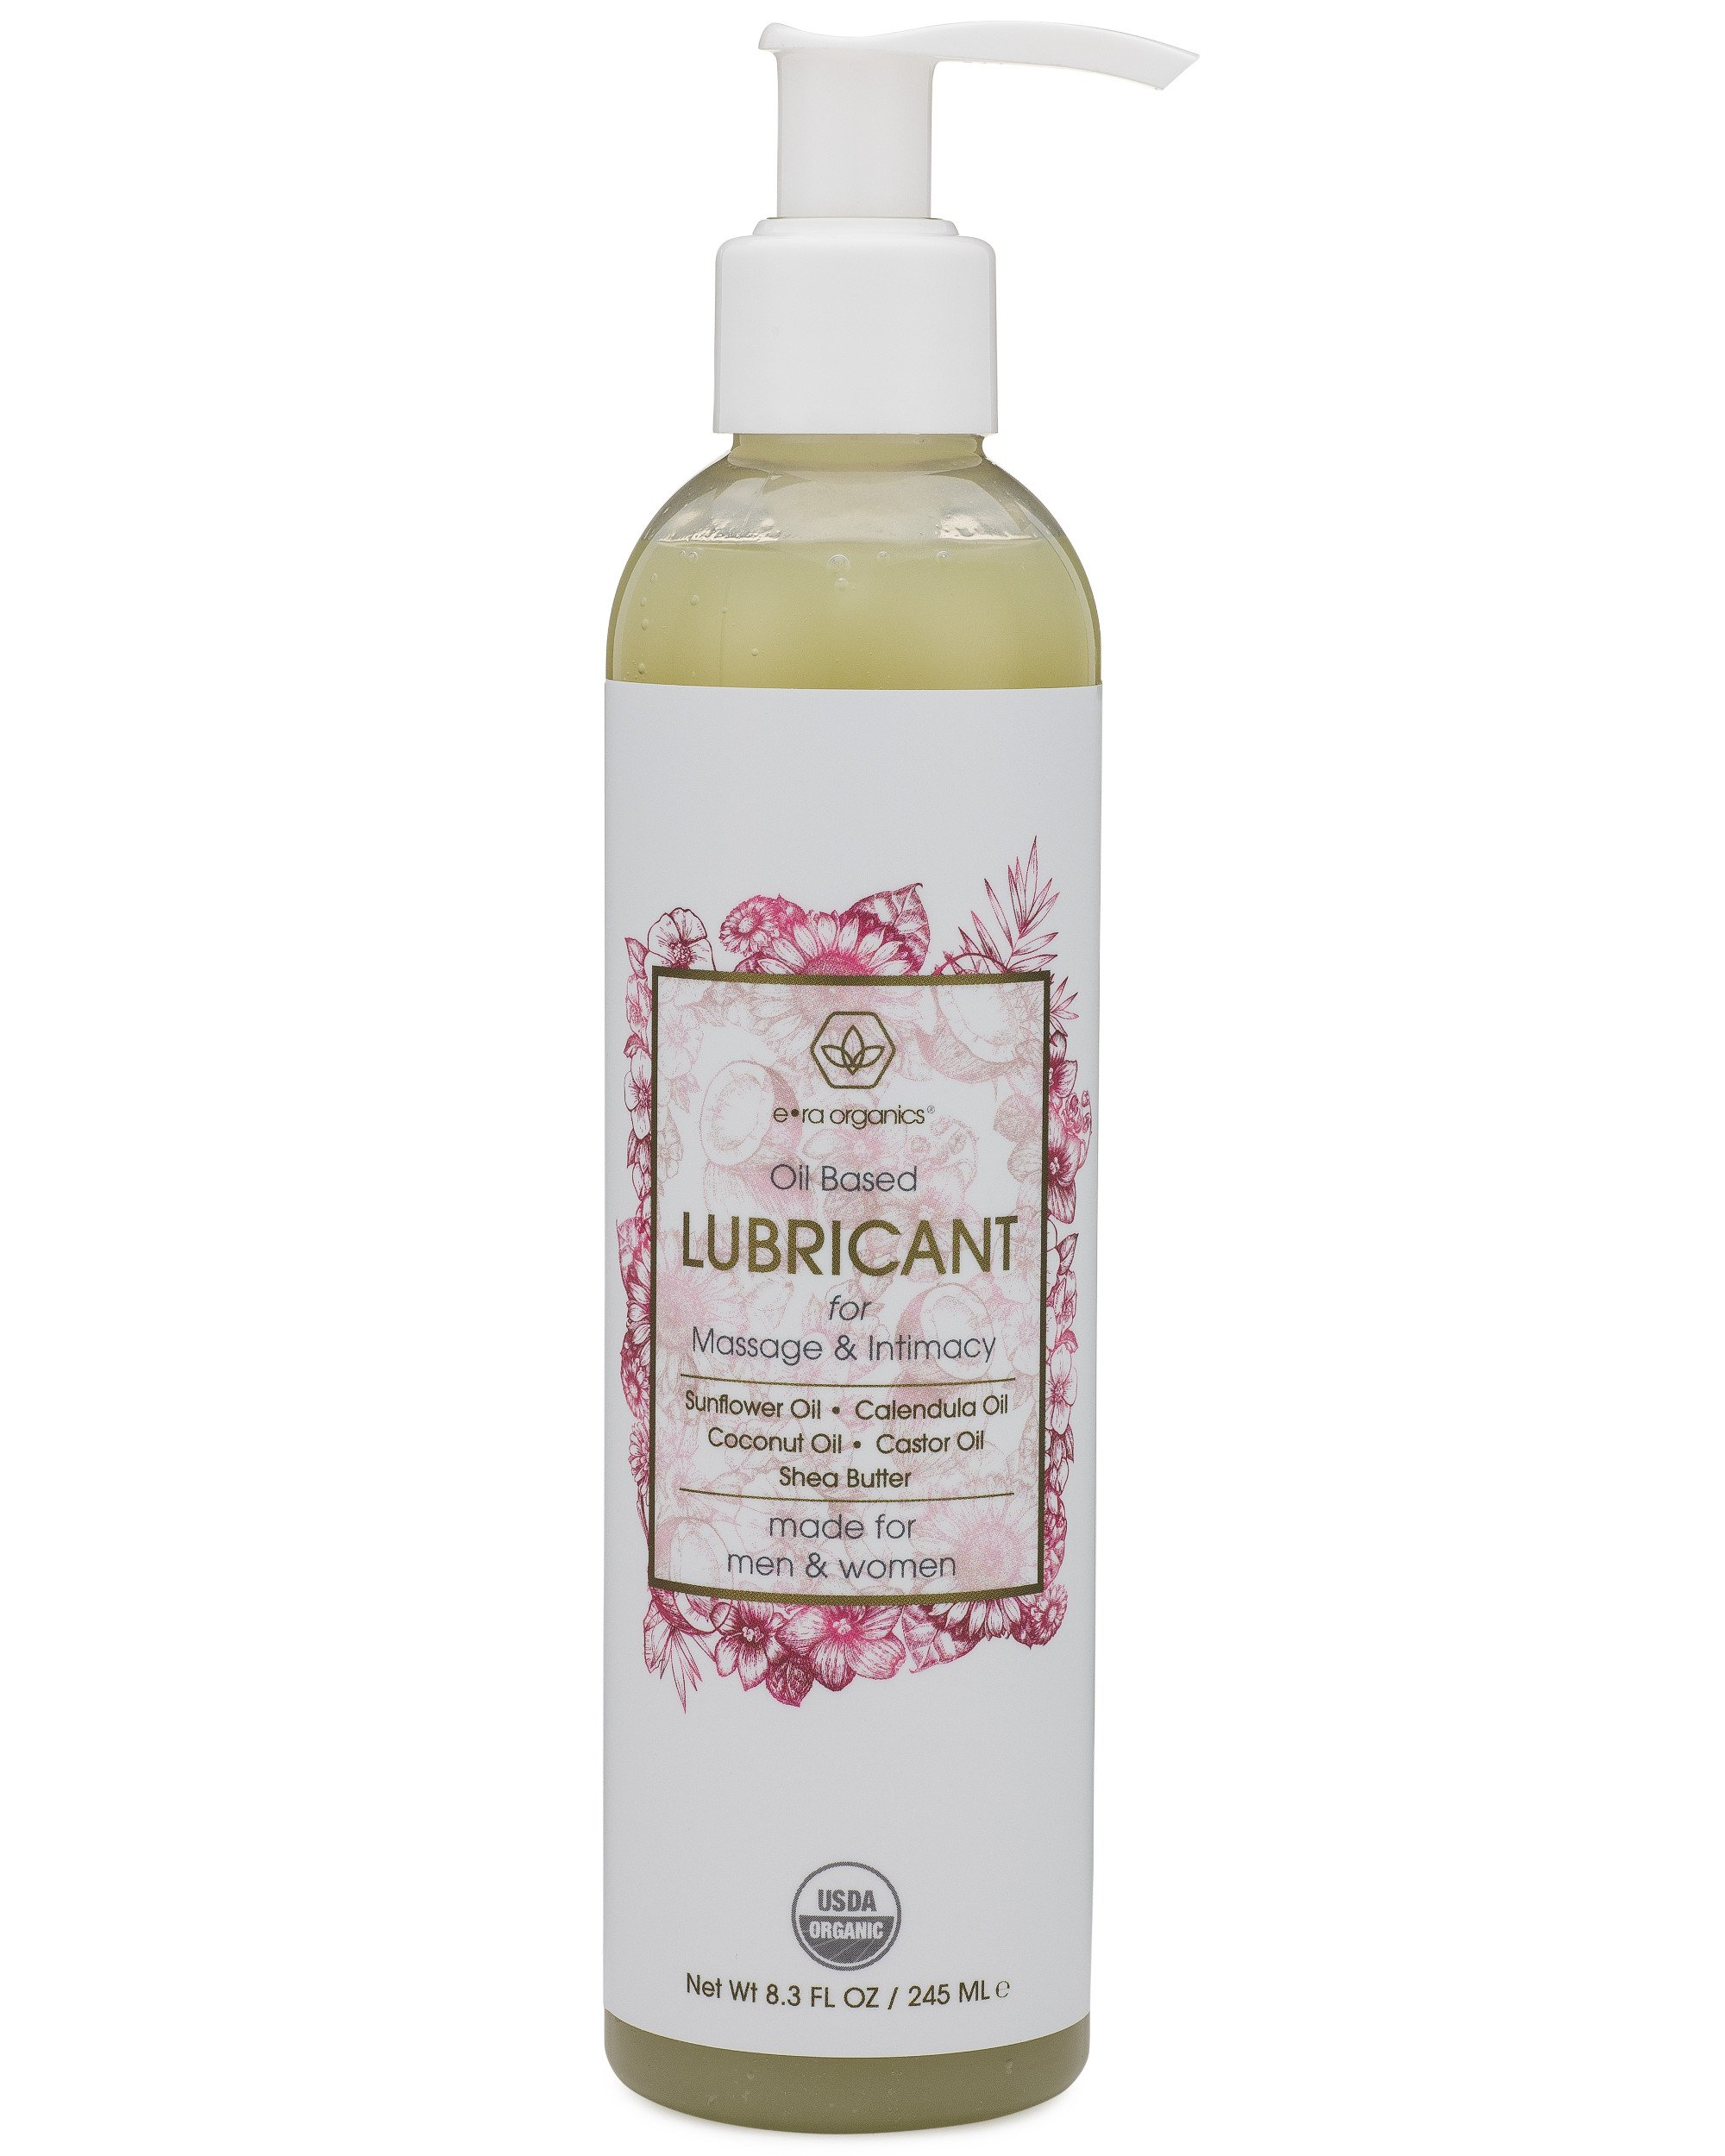 Organic Personal Lubricant & Massage Oil – Natural Lube For Men and Women With Extra Nourishing, Hydrating, Soothing Ingredients. Edible, Non Toxic, Paraben Free Formula.